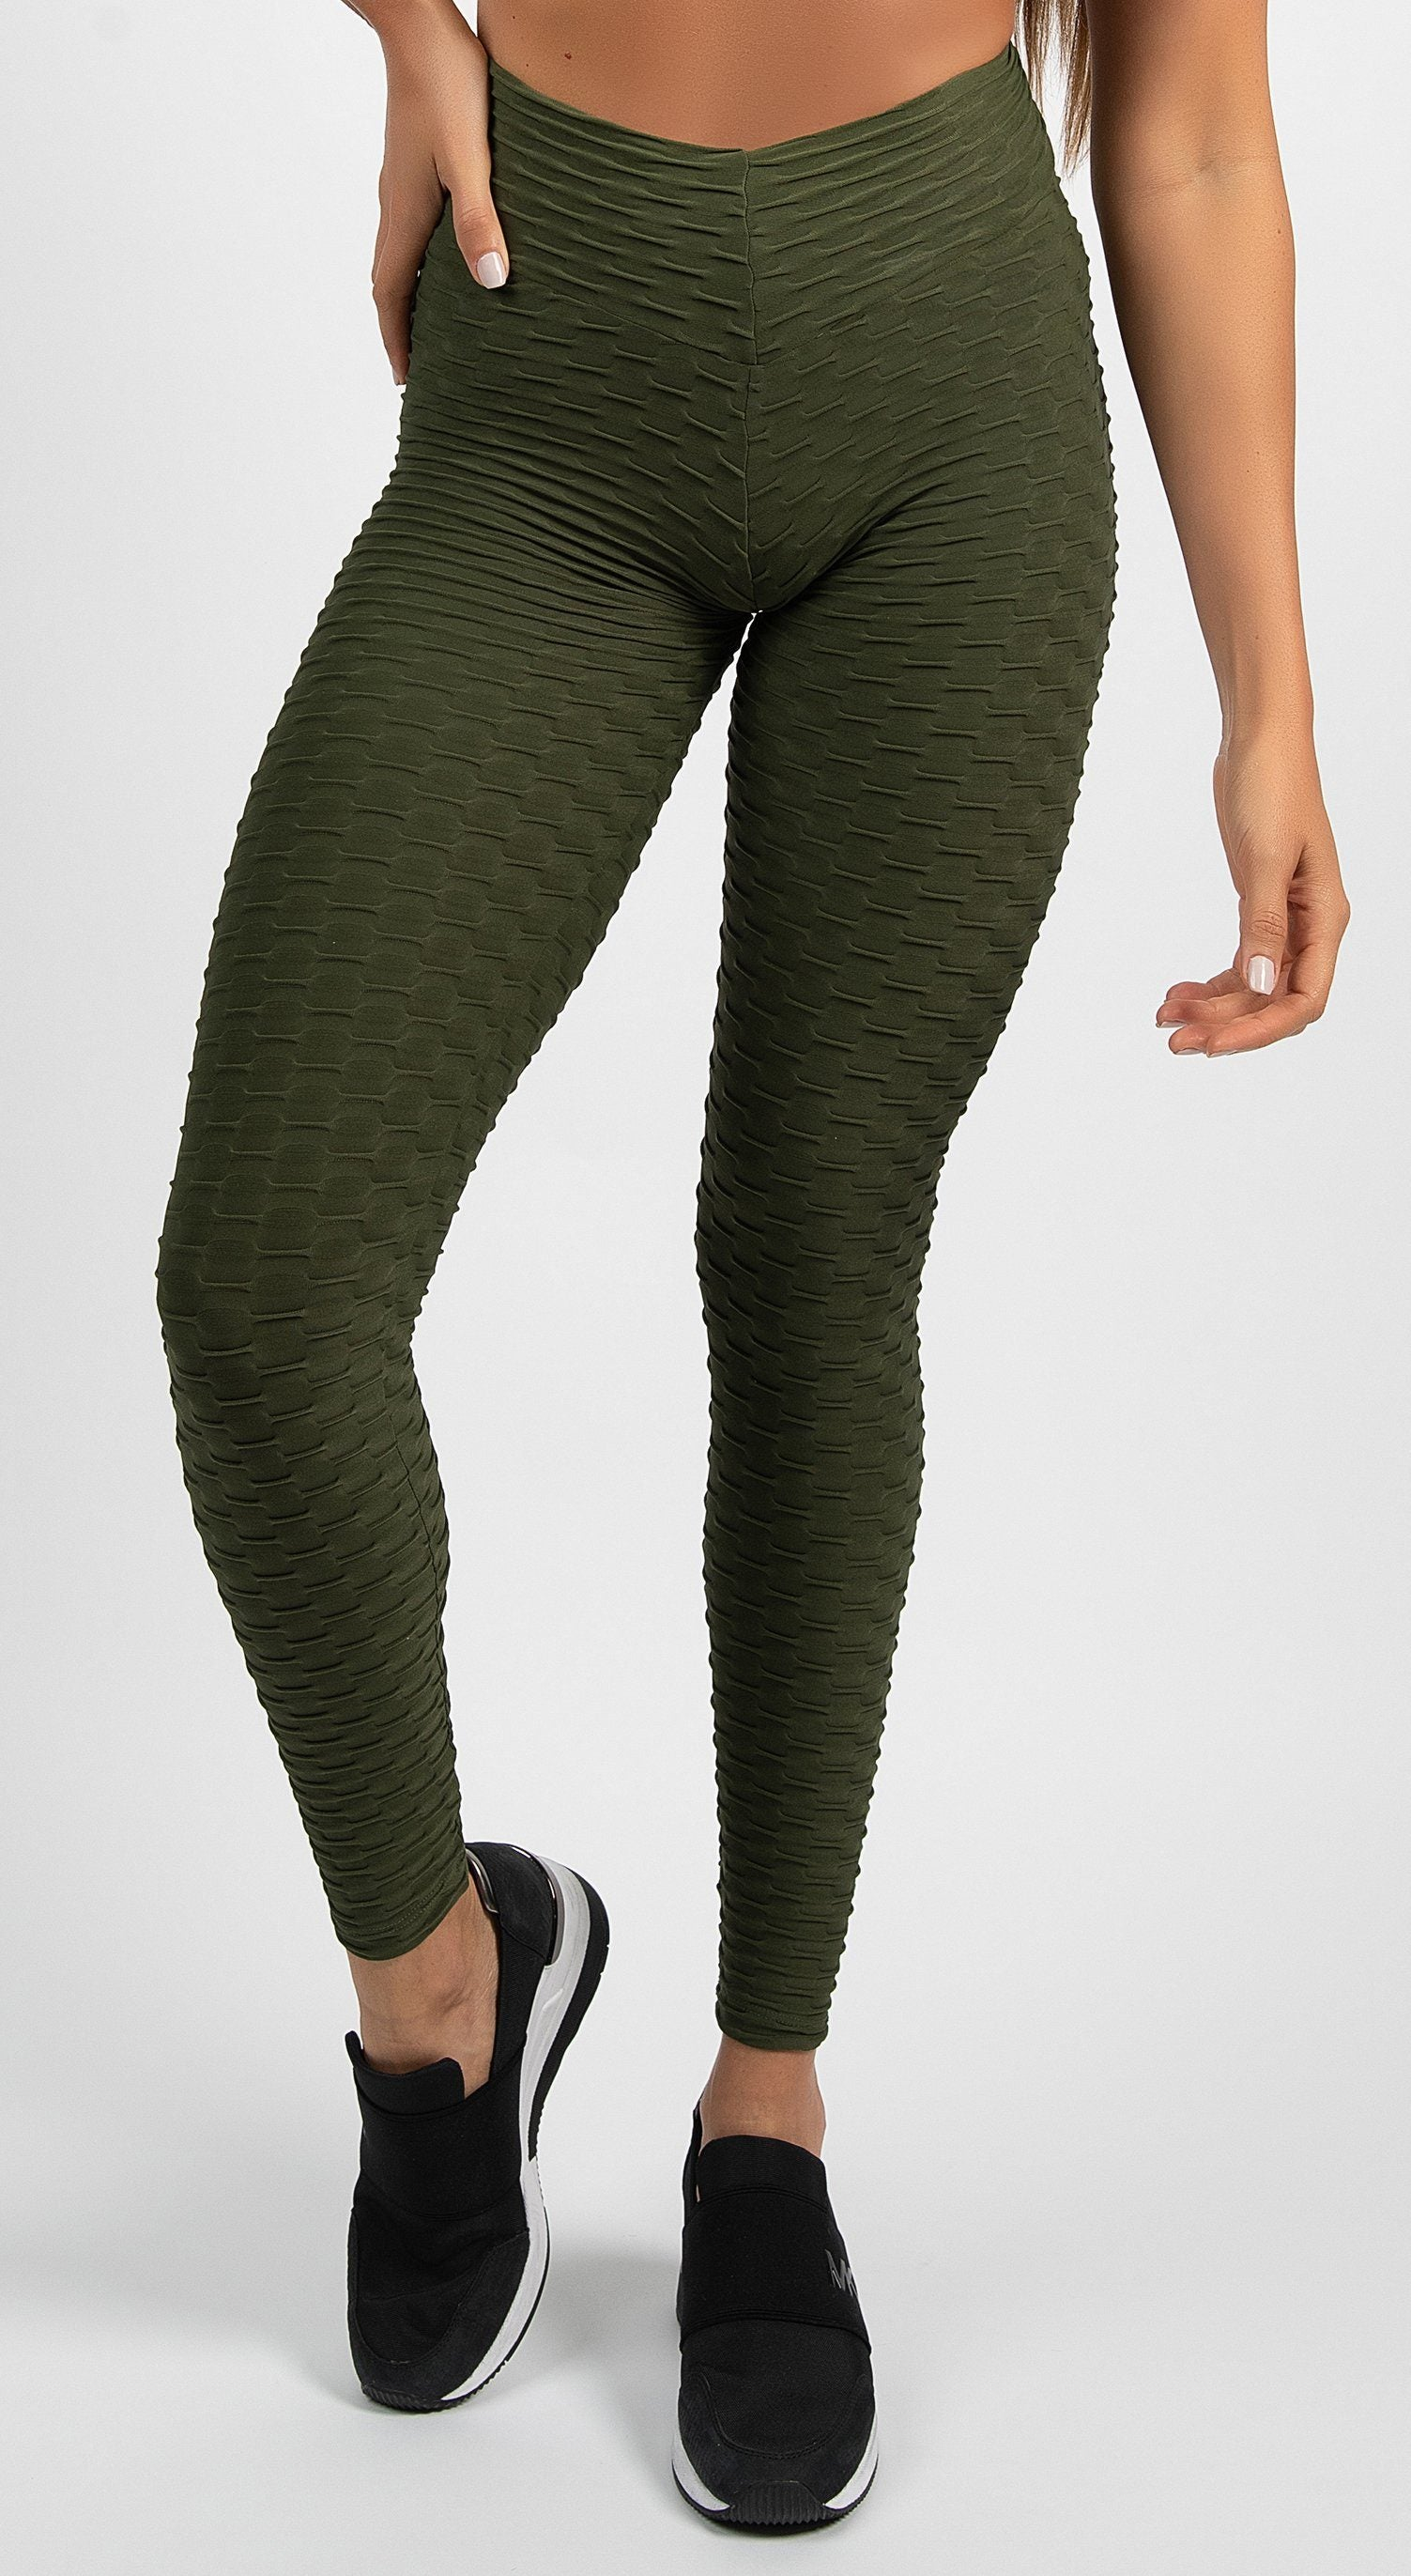 Brazilian Legging |  Anti Cellulite Honeycomb Textured Scrunch Booty Olive Green